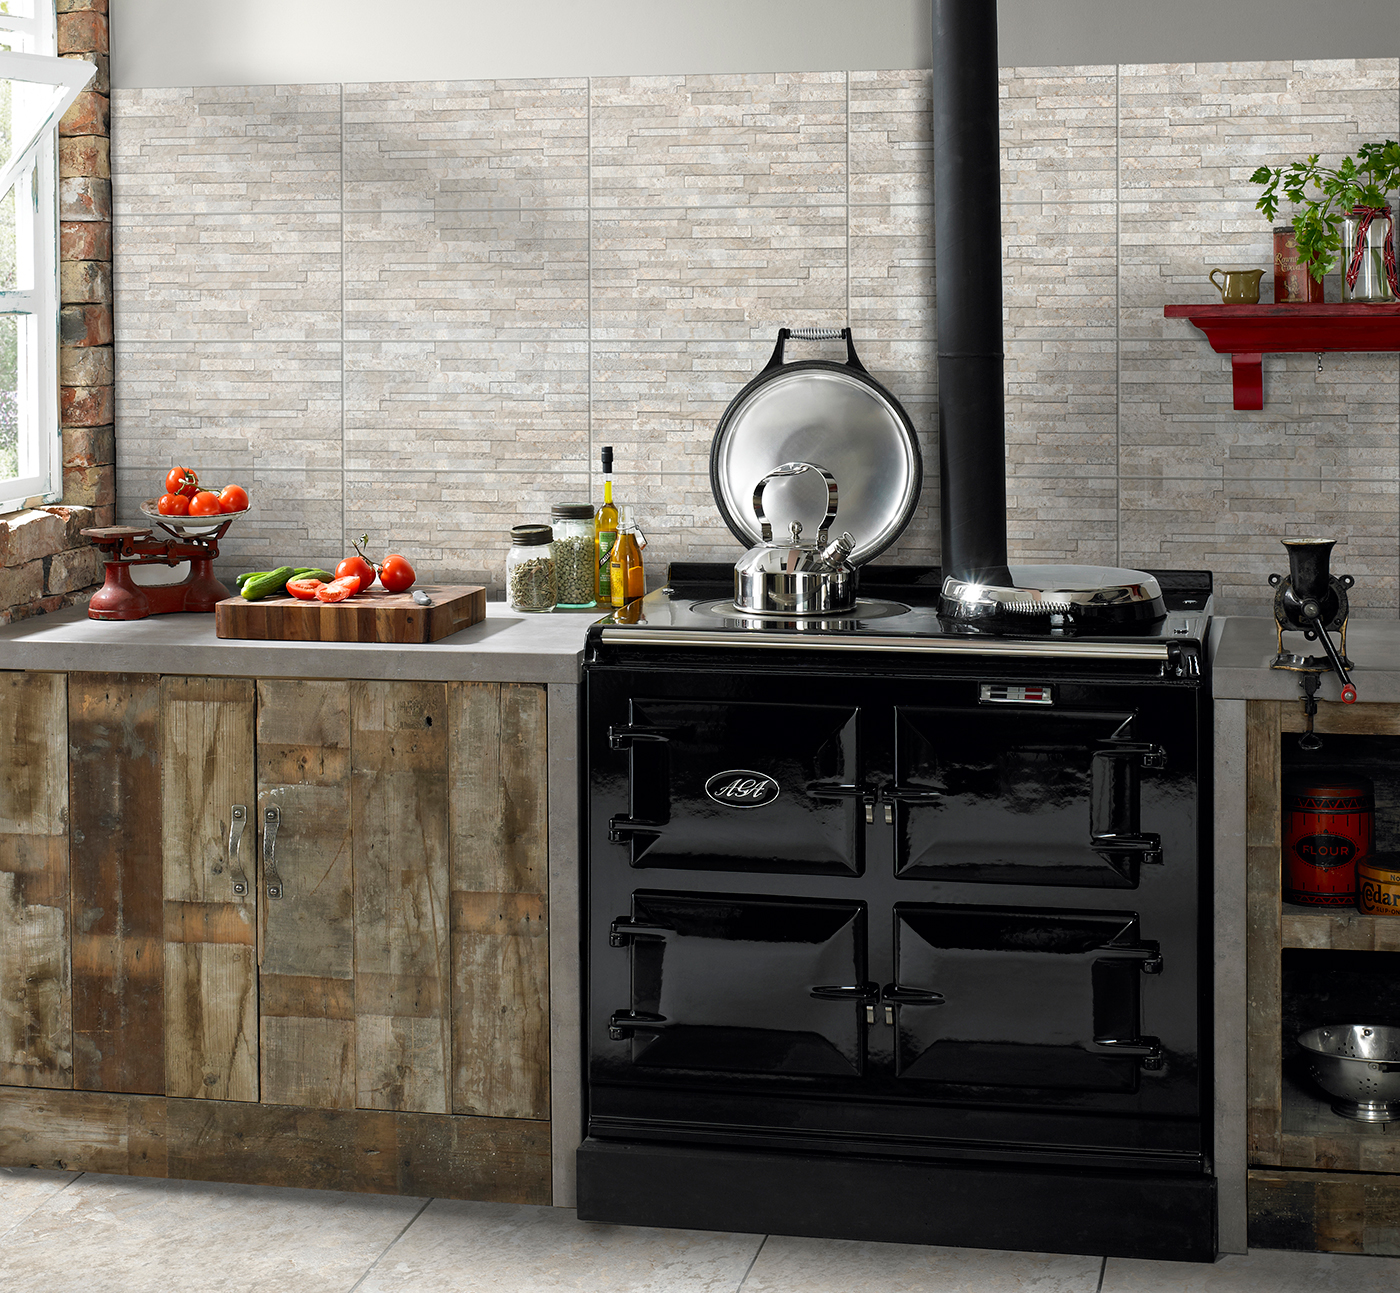 Whats new in hd technology british ceramic tile hd slate textured kitchen tiles from the hd tile ranges dailygadgetfo Images